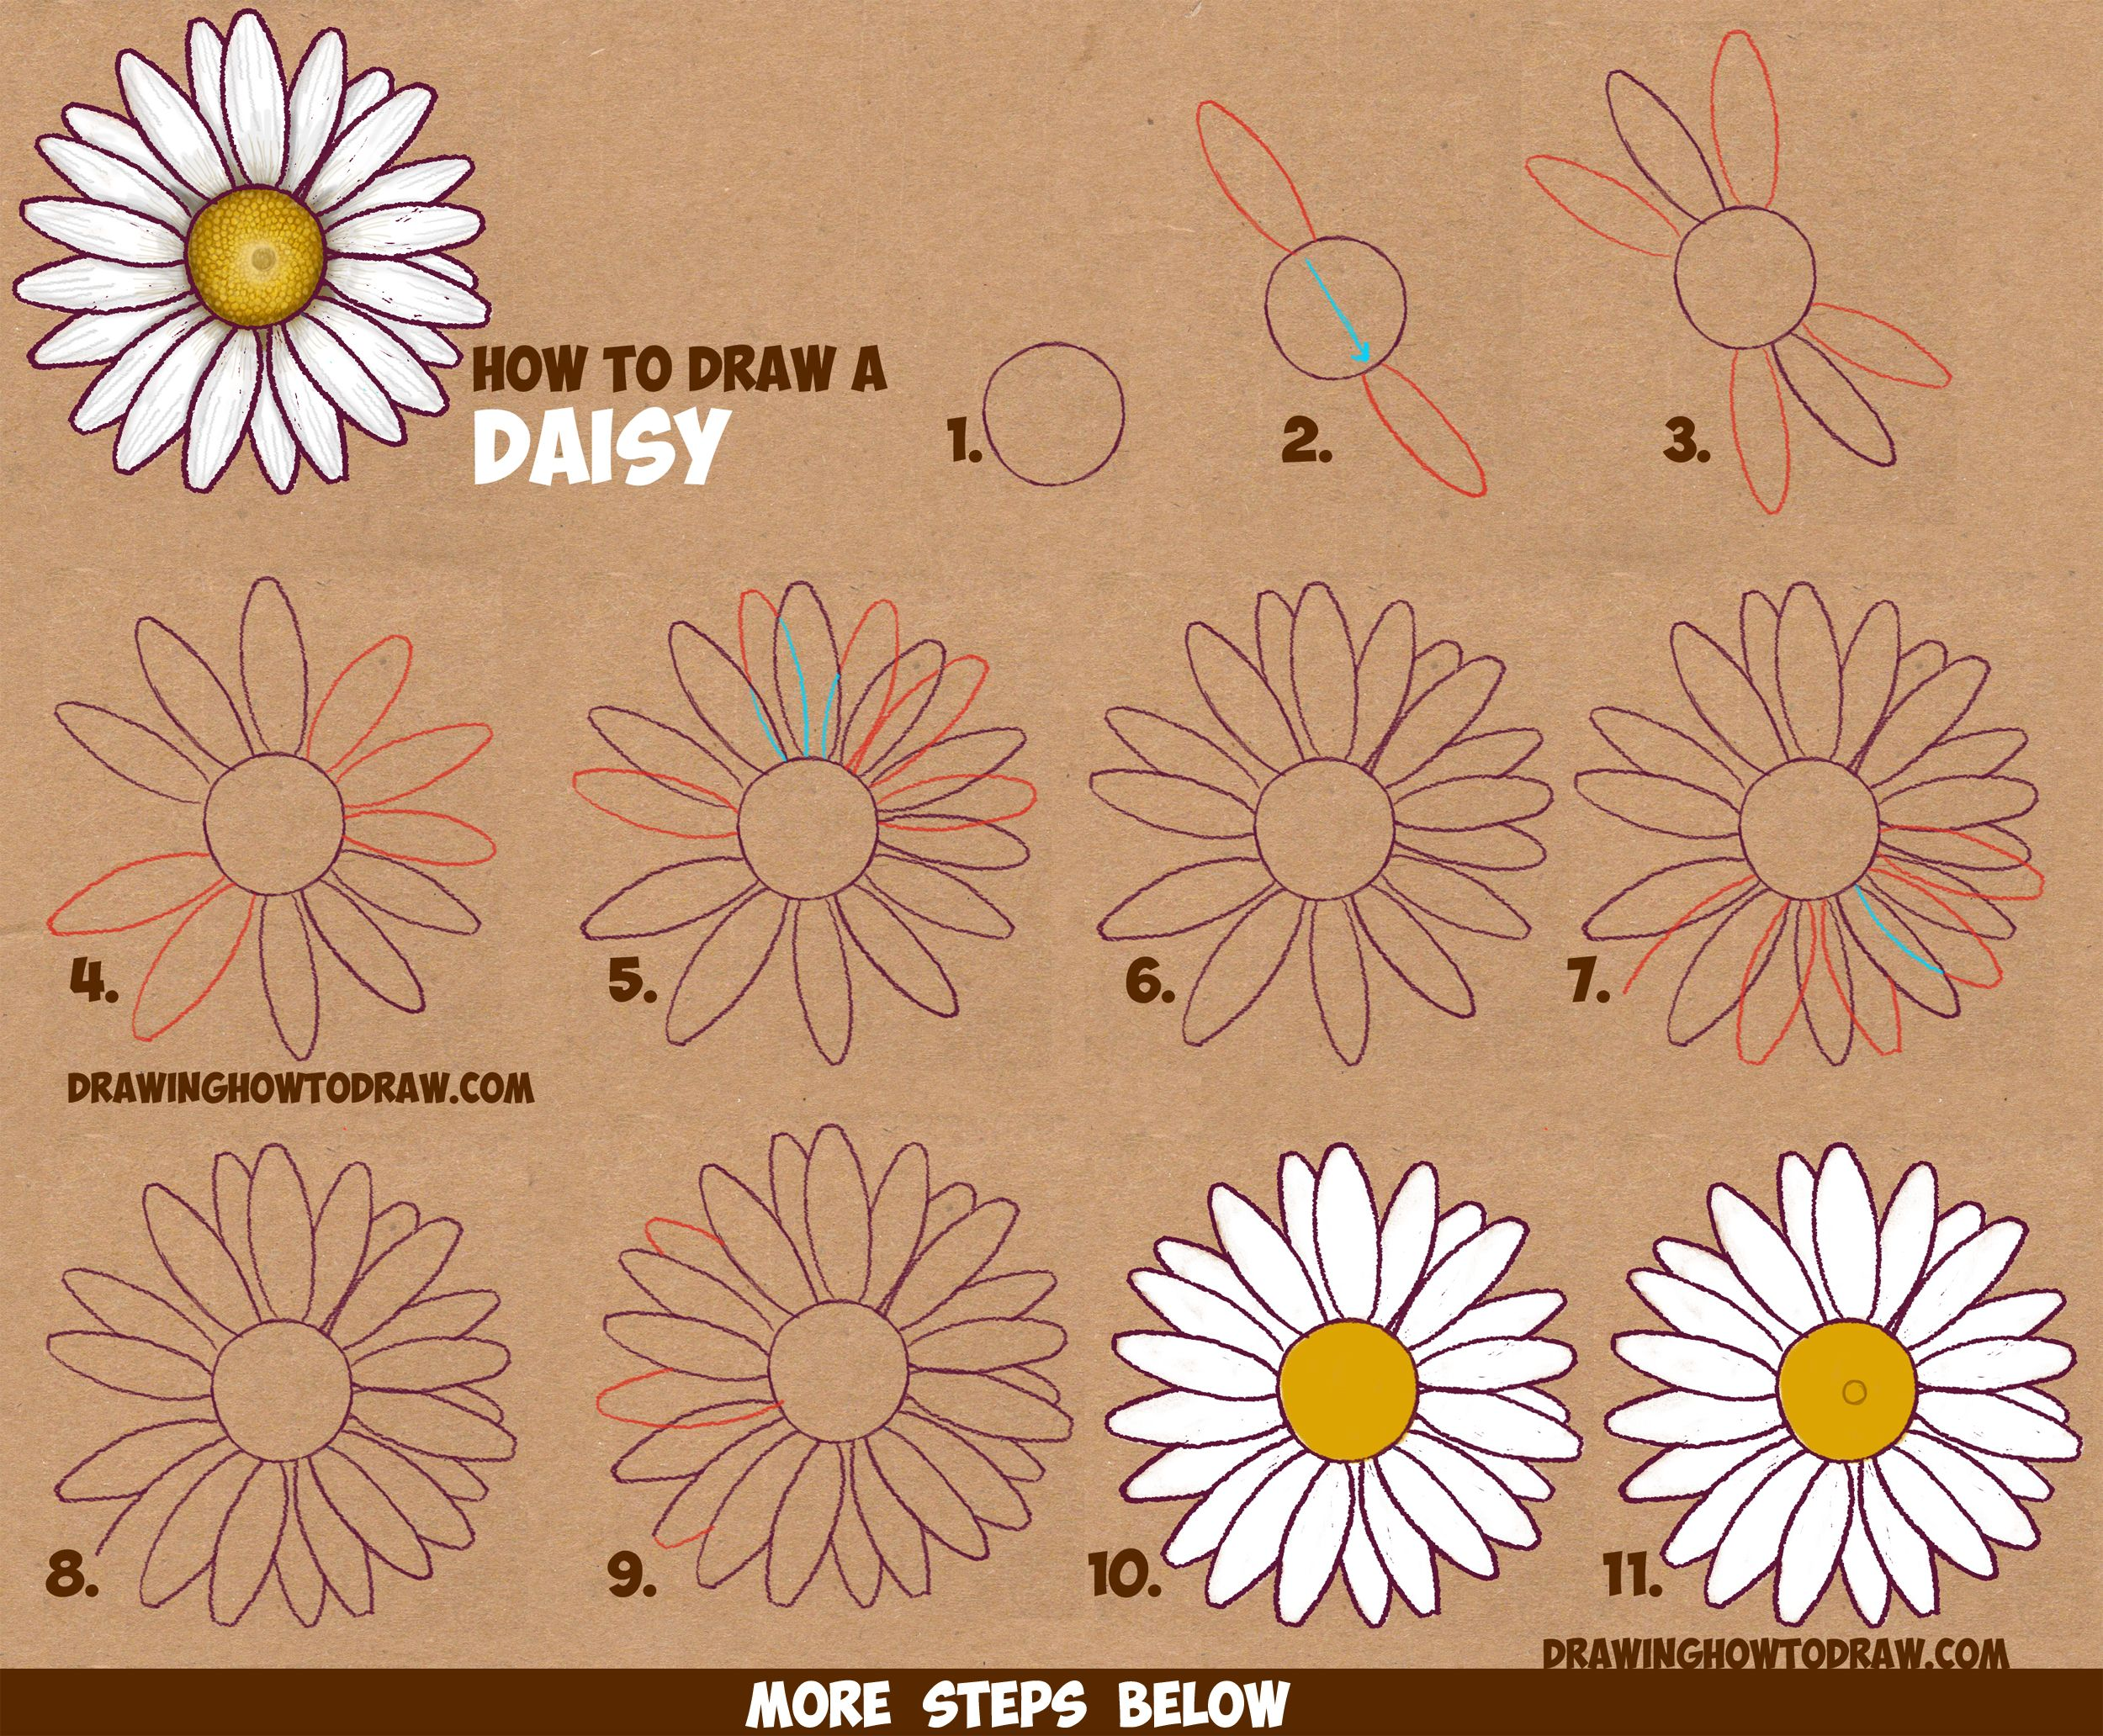 How To Draw A Daisy Flower (daisies) In Easy Step By Step Drawing  Instructions